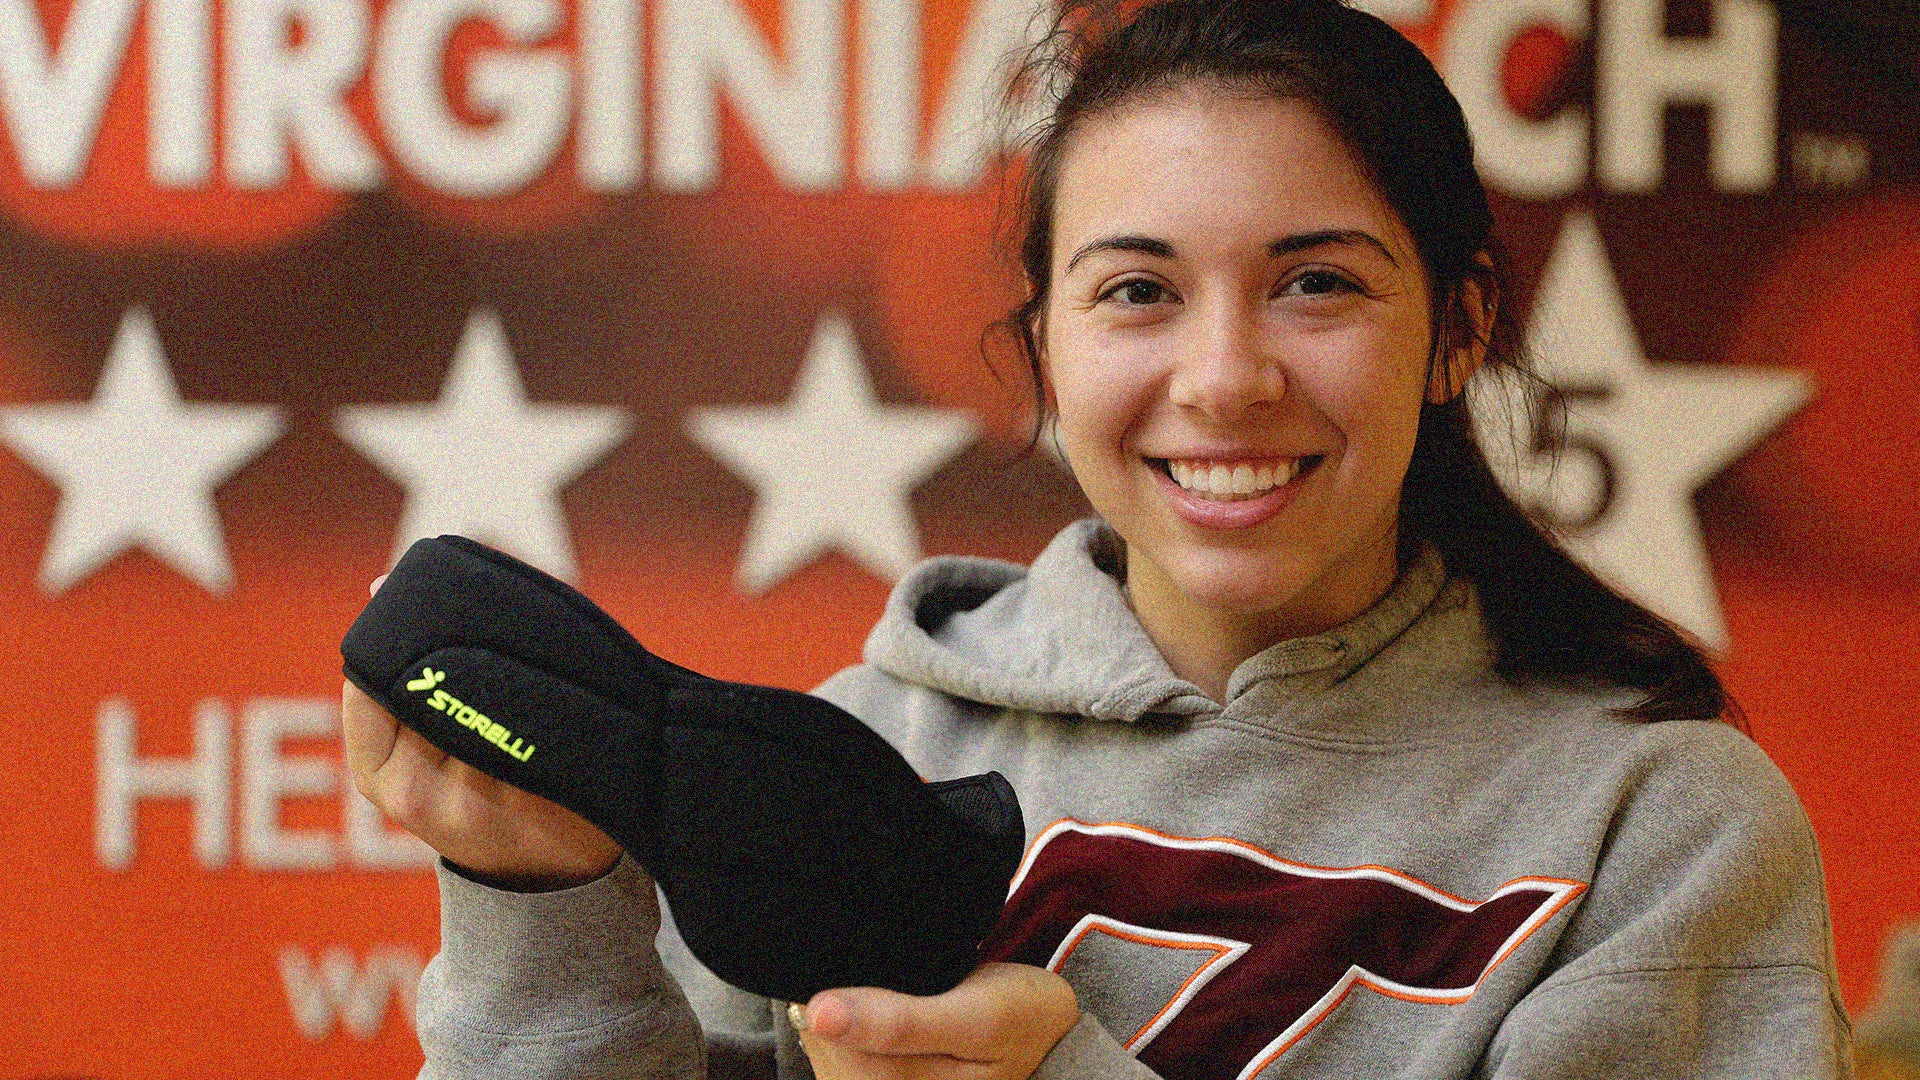 Storelli soccer headgear tested at Virginia Tech and ranked best of all, with 5 stars and 84% reduction in concussions